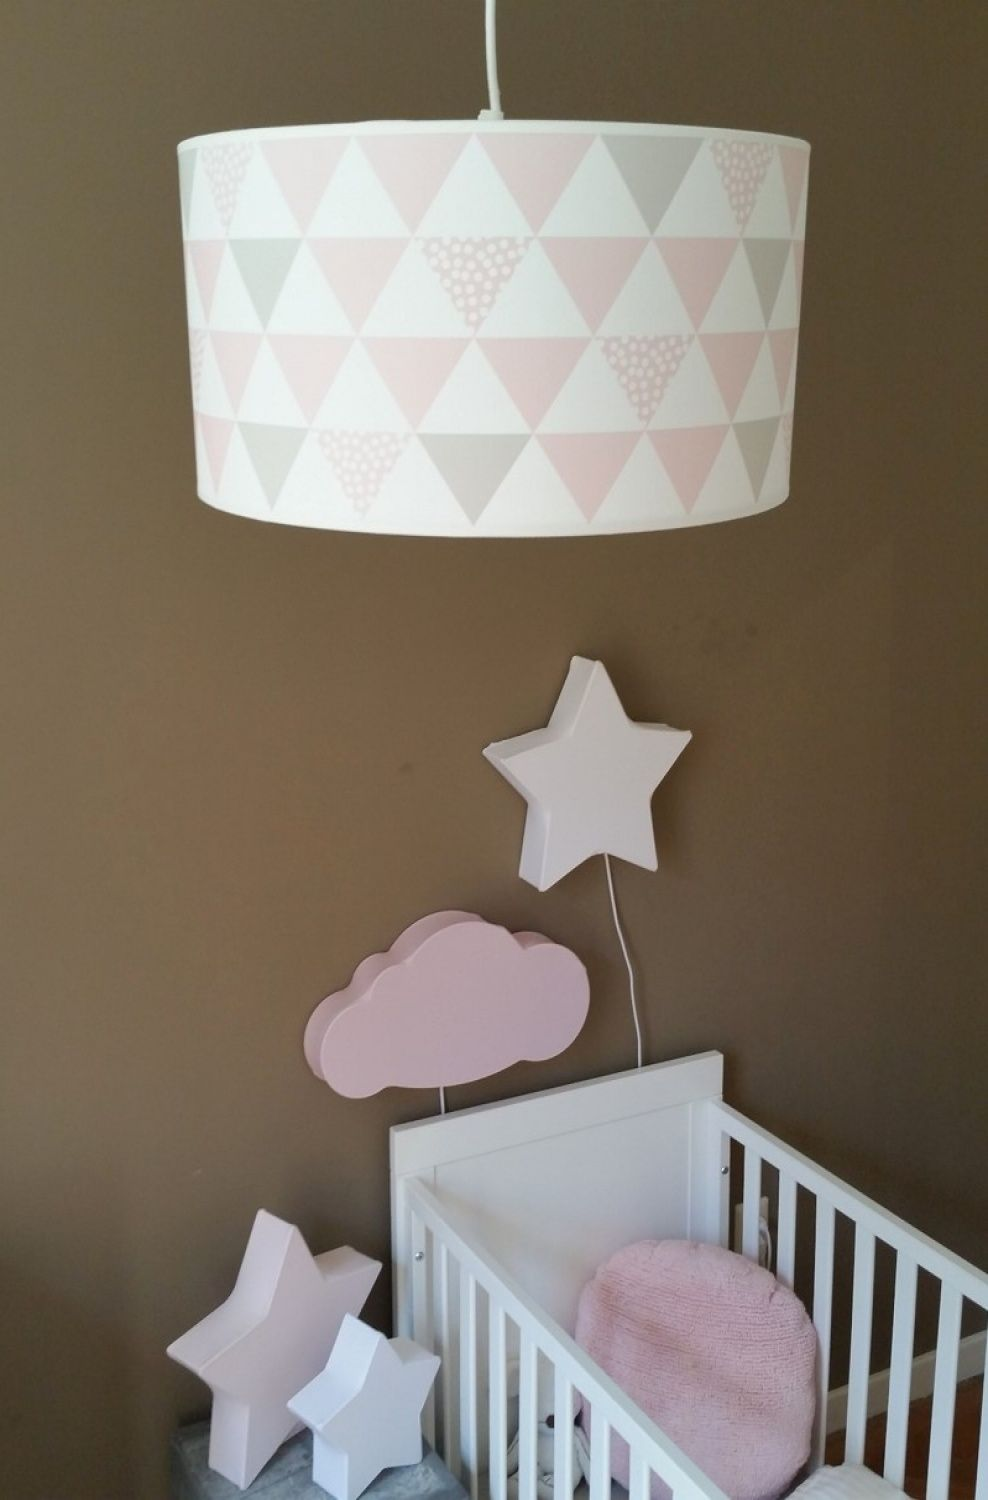 Wolken Kinderkamer Noonos Lamp Babykamer Light Lampe Decoratie